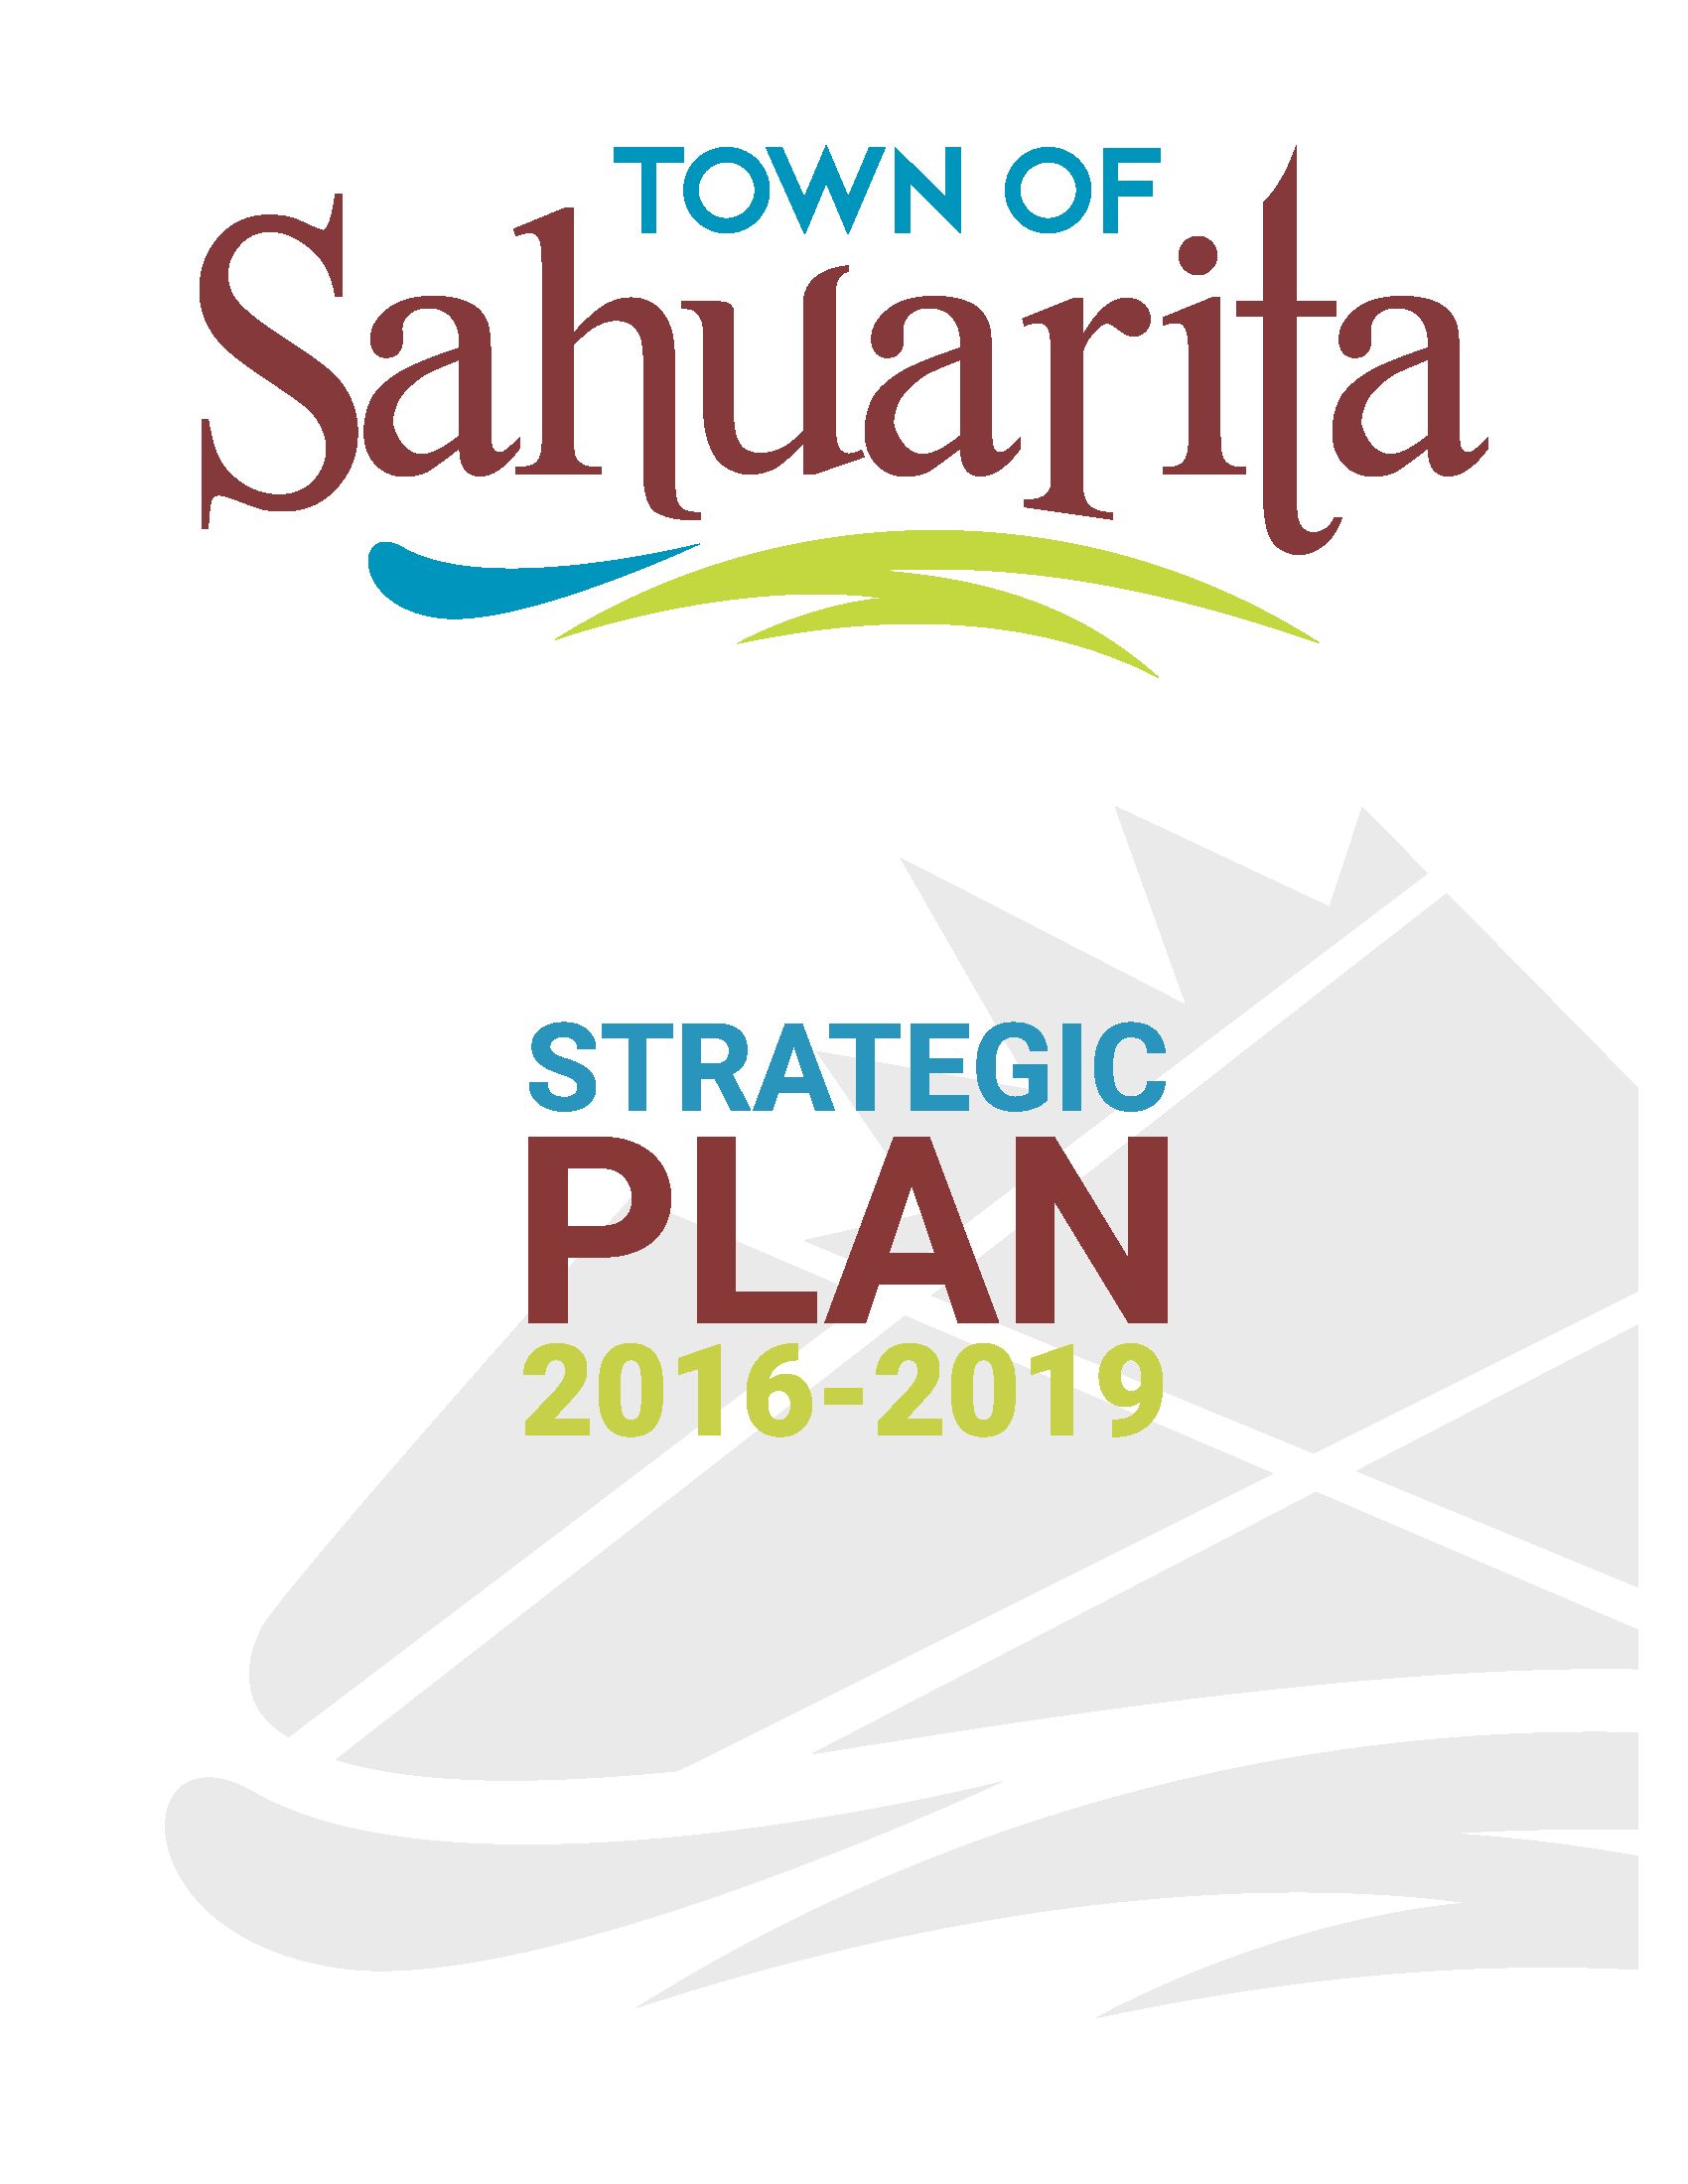 Pages From StrategicPlan ADOPTED REBRAND 030817 02 (002)_Cover.